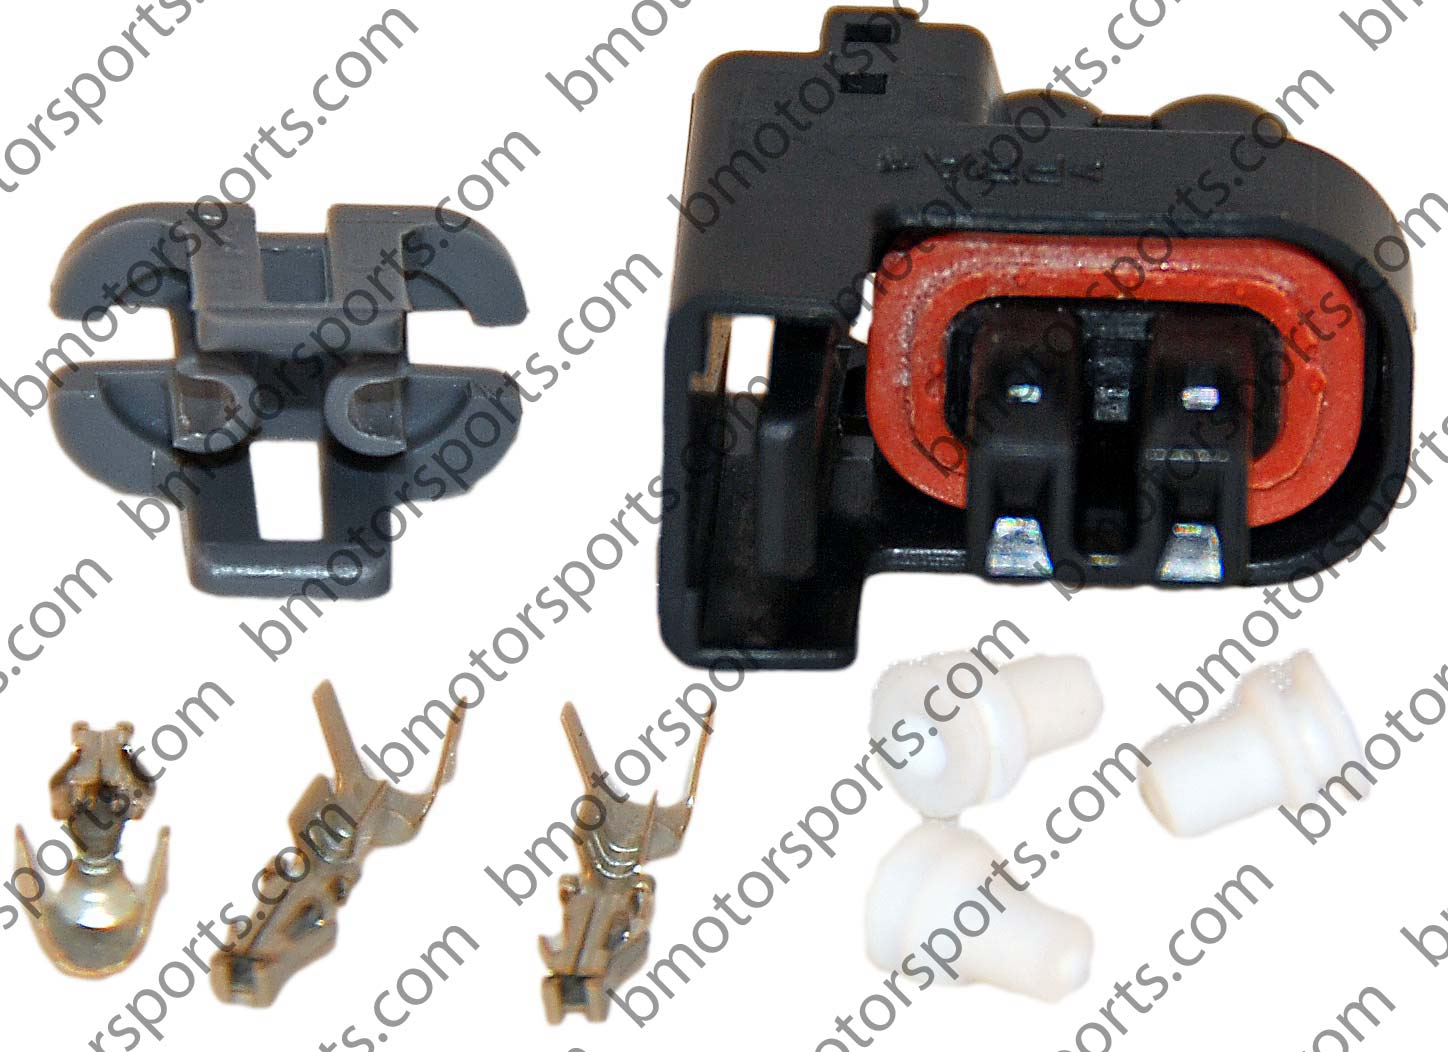 Home Shop Gm Delphi Packard Multec2 Injector Wiring Connectors Connector Kit